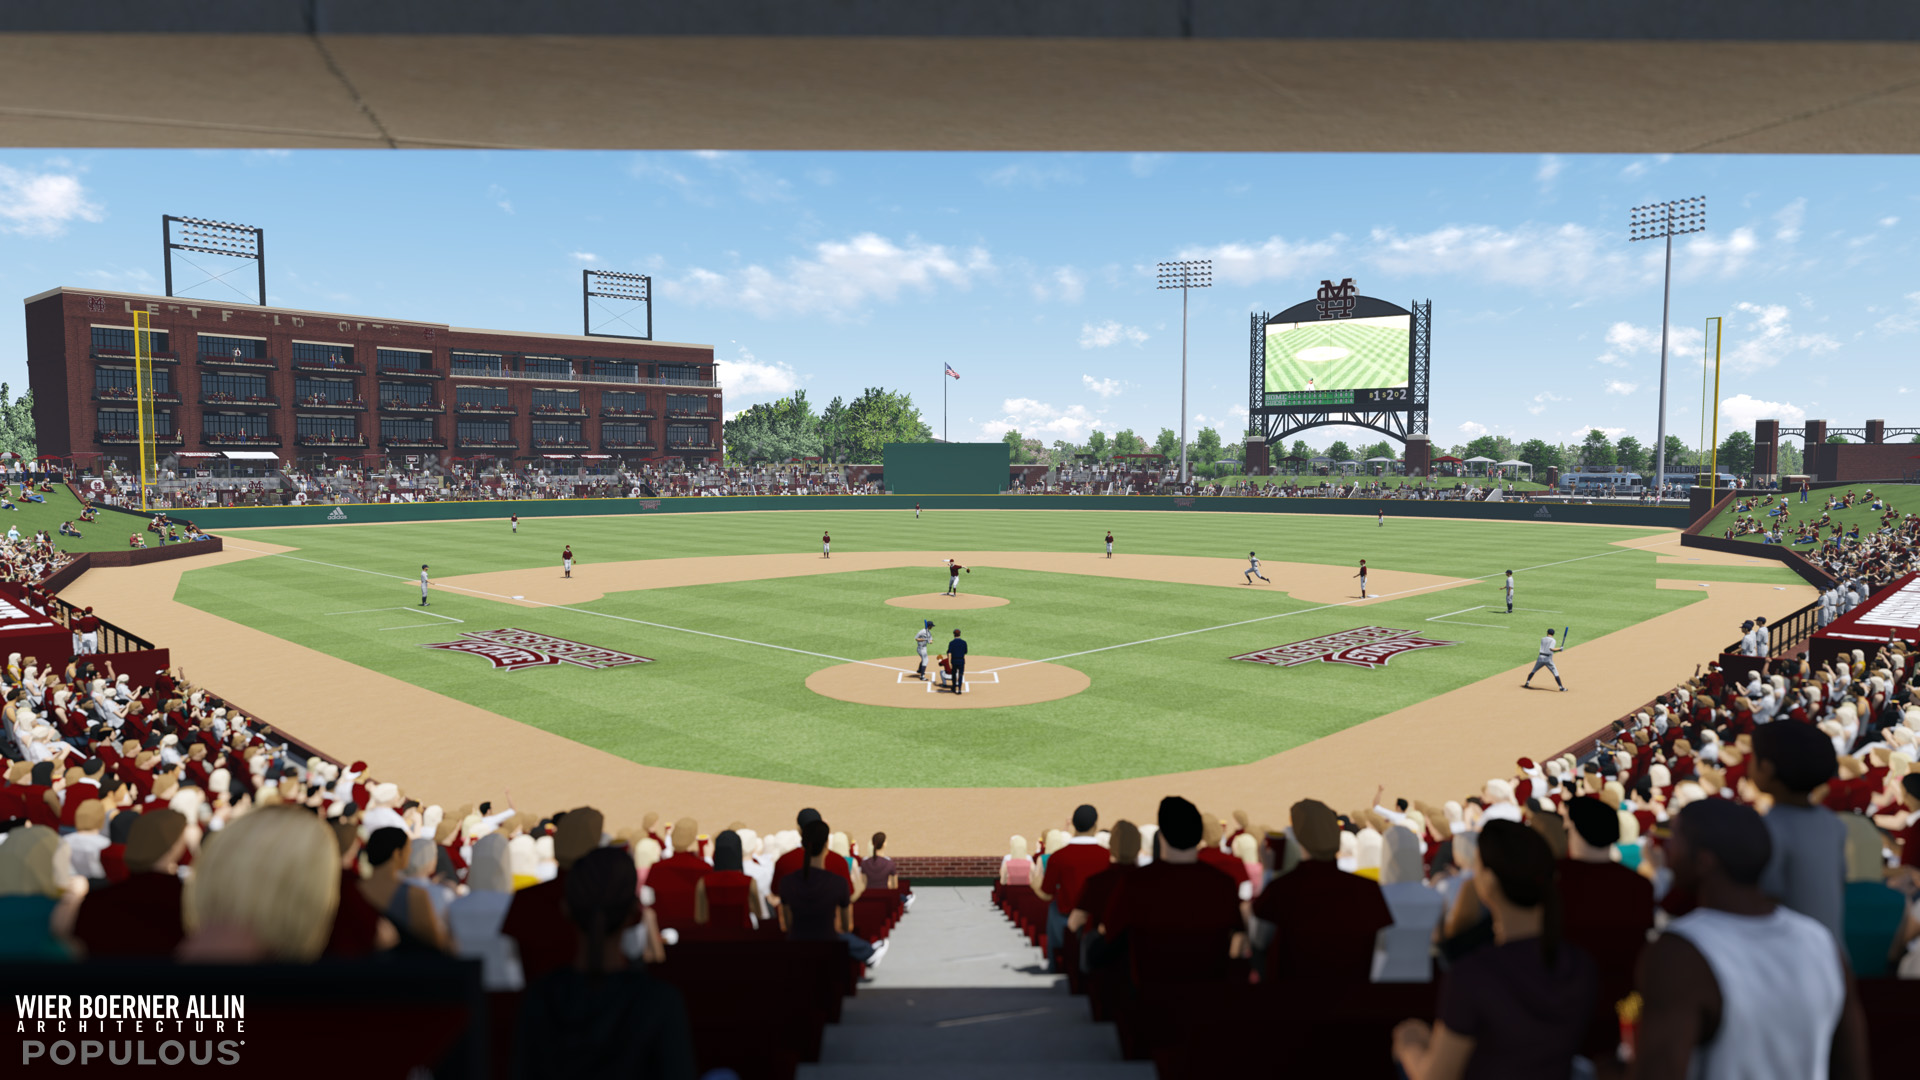 Details on plans for msus new baseball stadium hailstatebeat 5 malvernweather Gallery